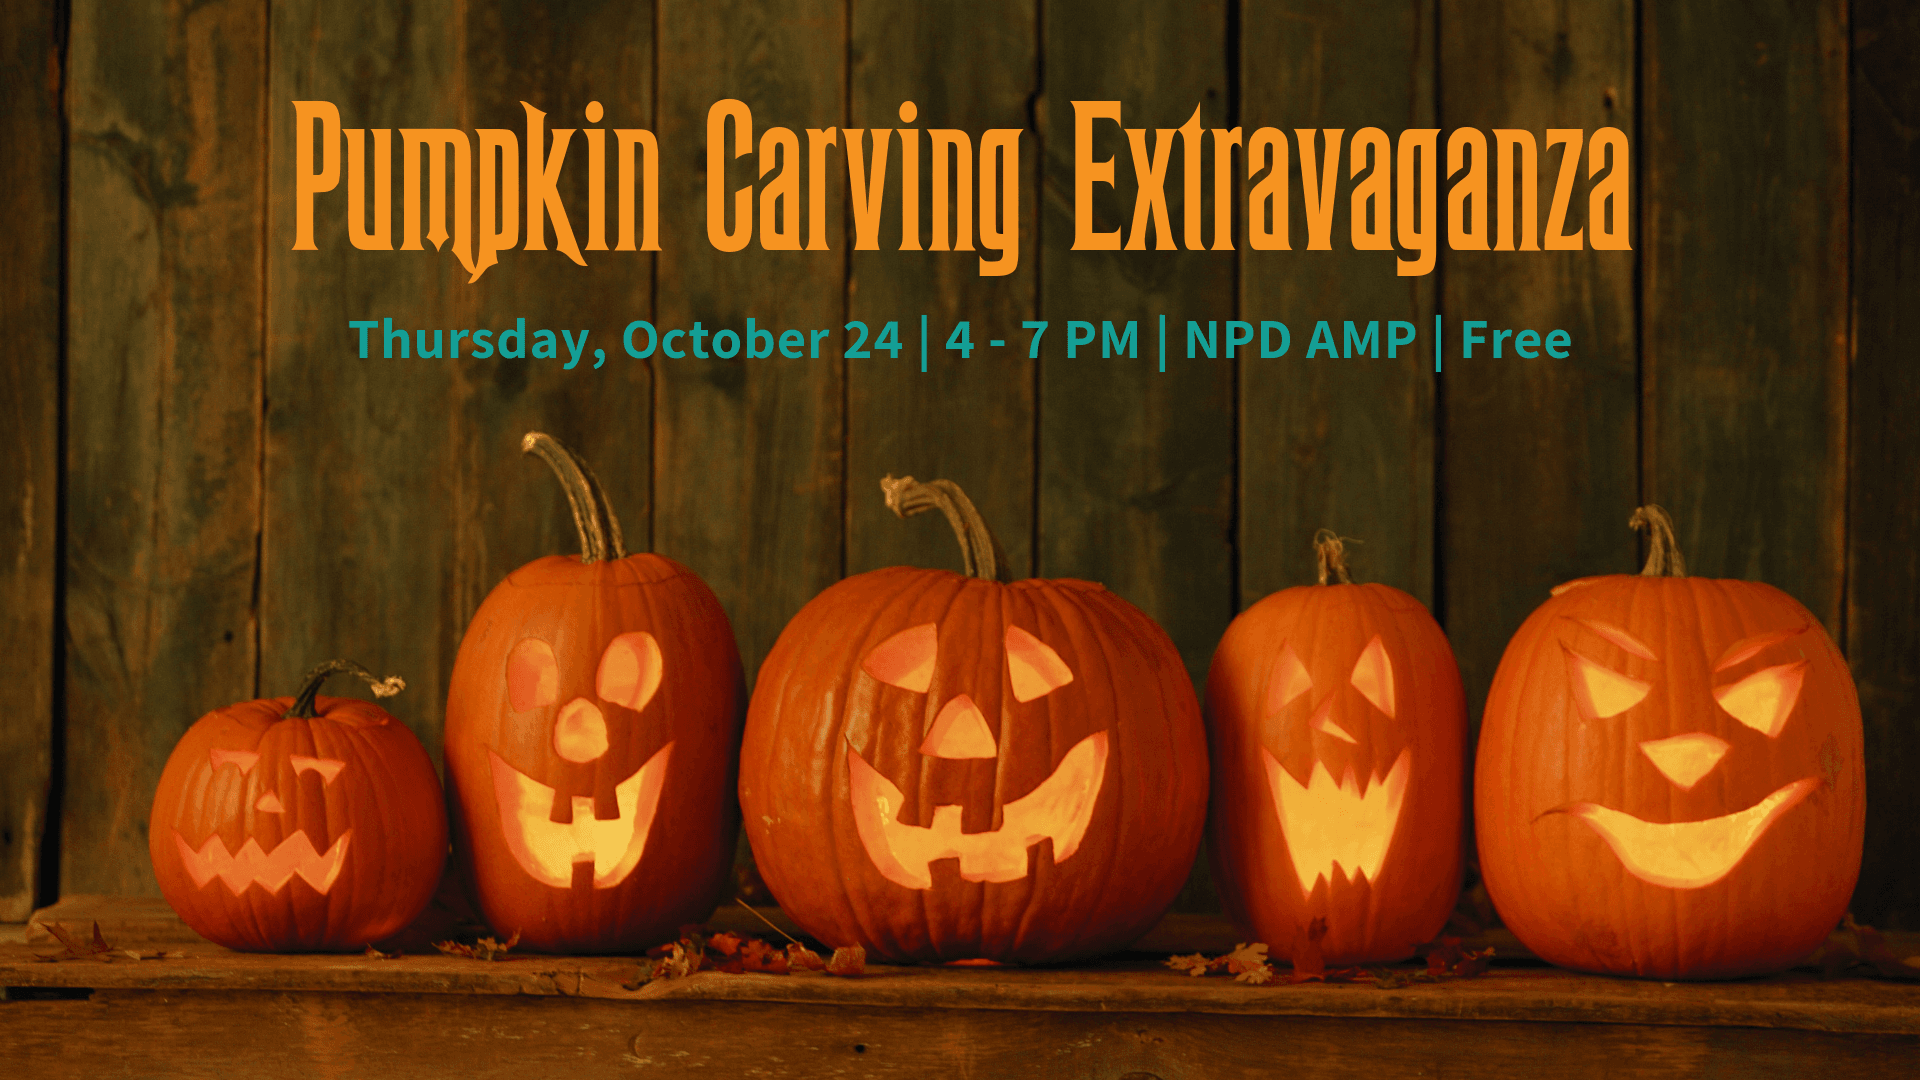 Pumpkin Carving extravaganza, thursday, october 26, 4 - 7 pm | npd amp | free